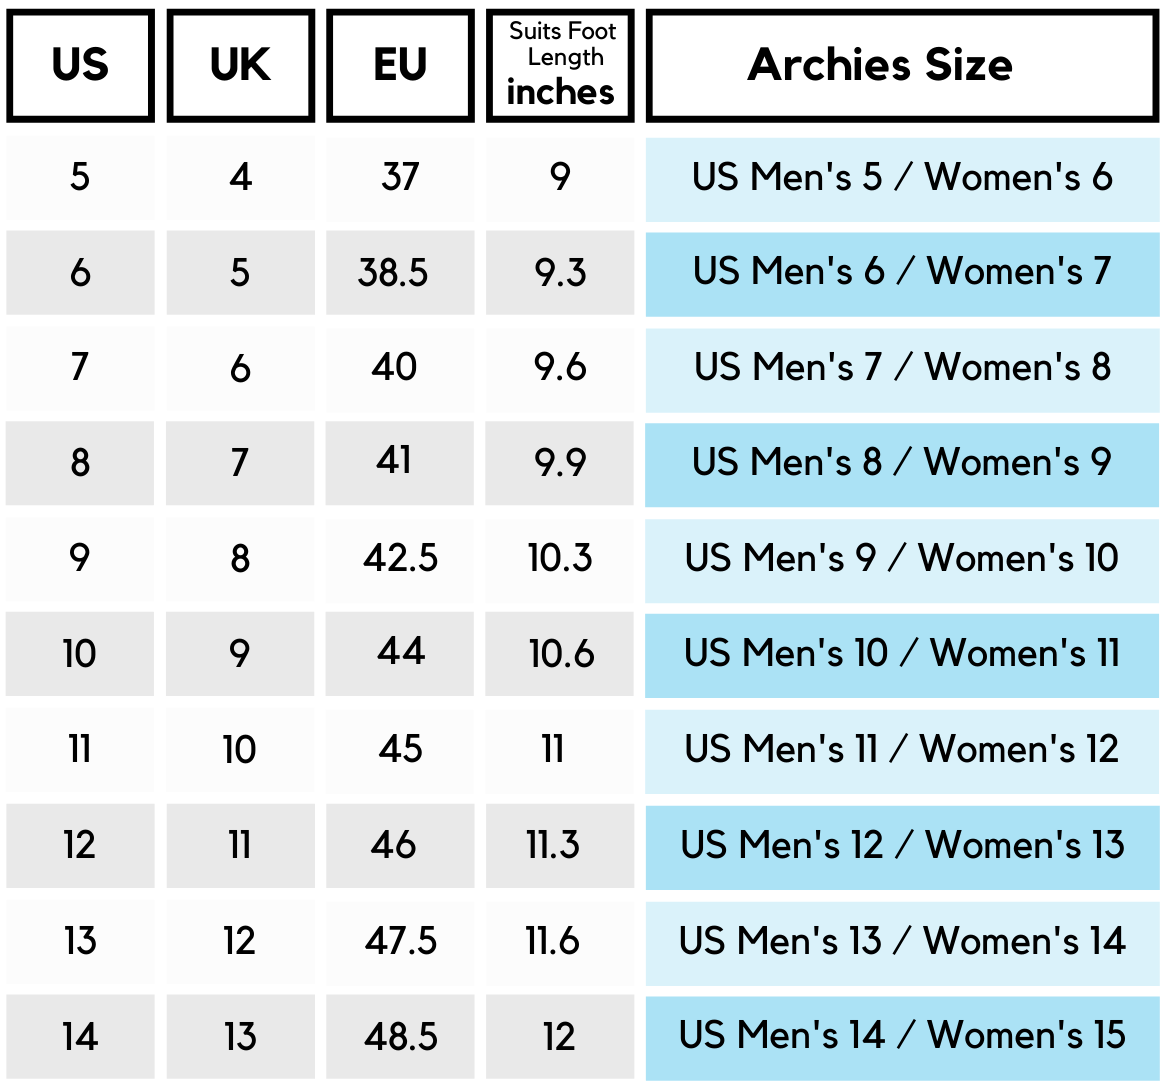 Archies US Women's Size Chart